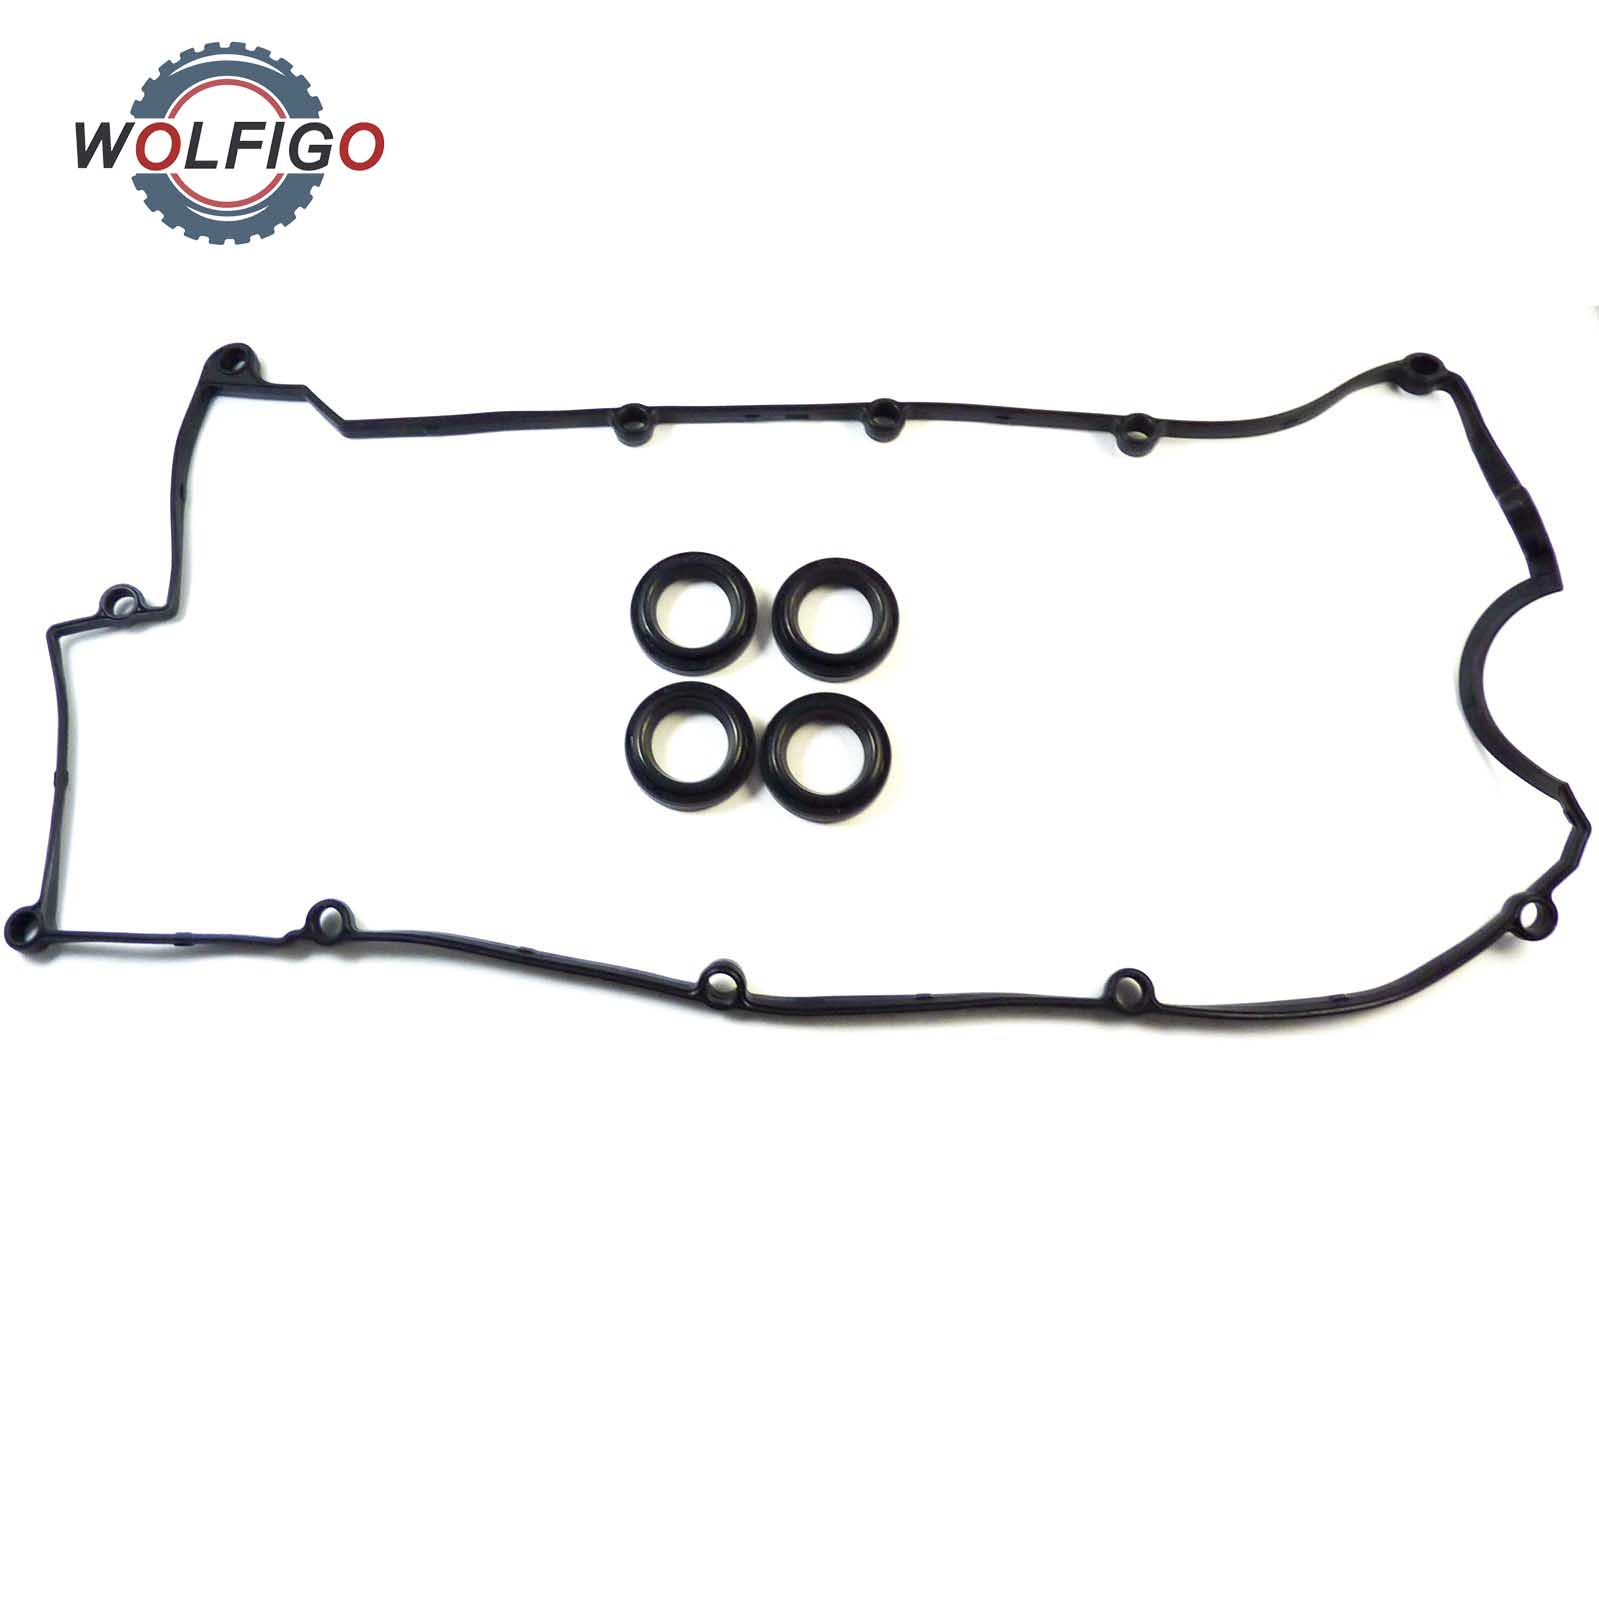 Wolfigo Valve Cover Gasket Set Vs R For